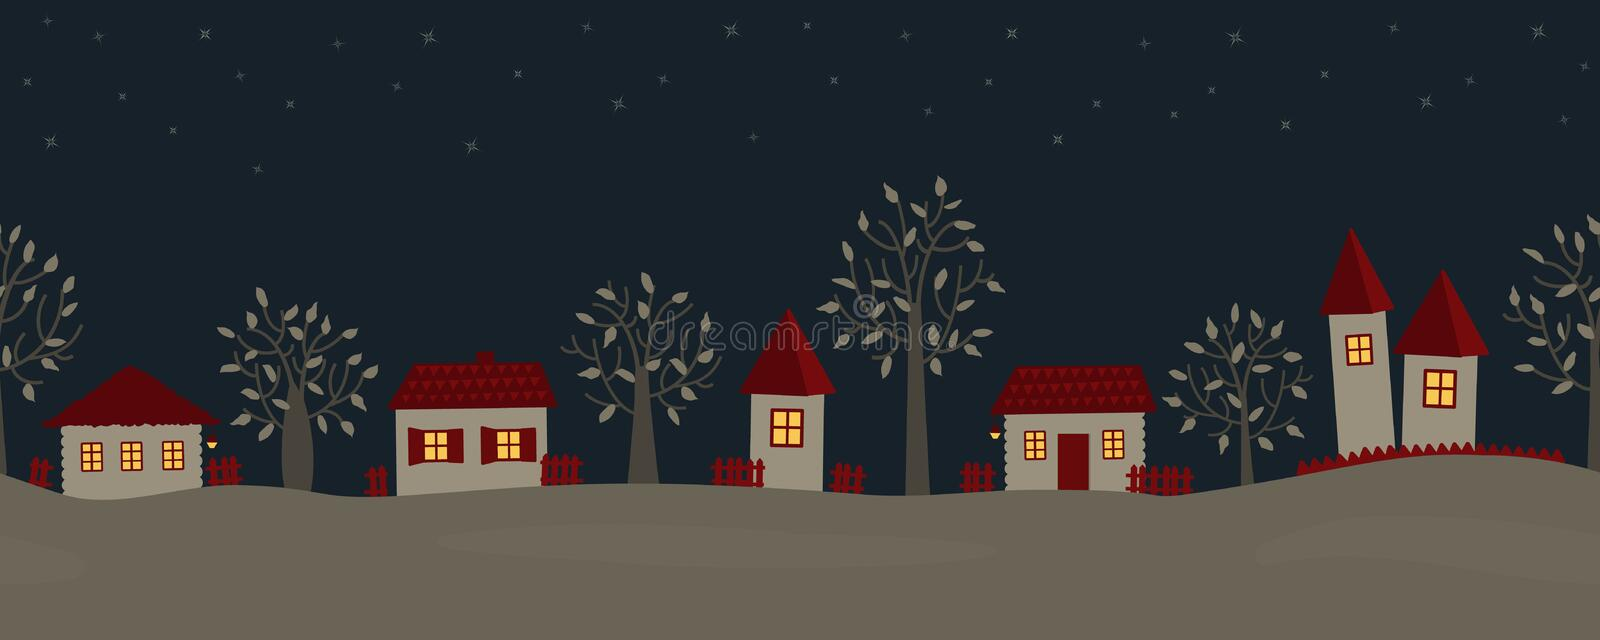 Summer night in the village. Country landscape royalty free illustration